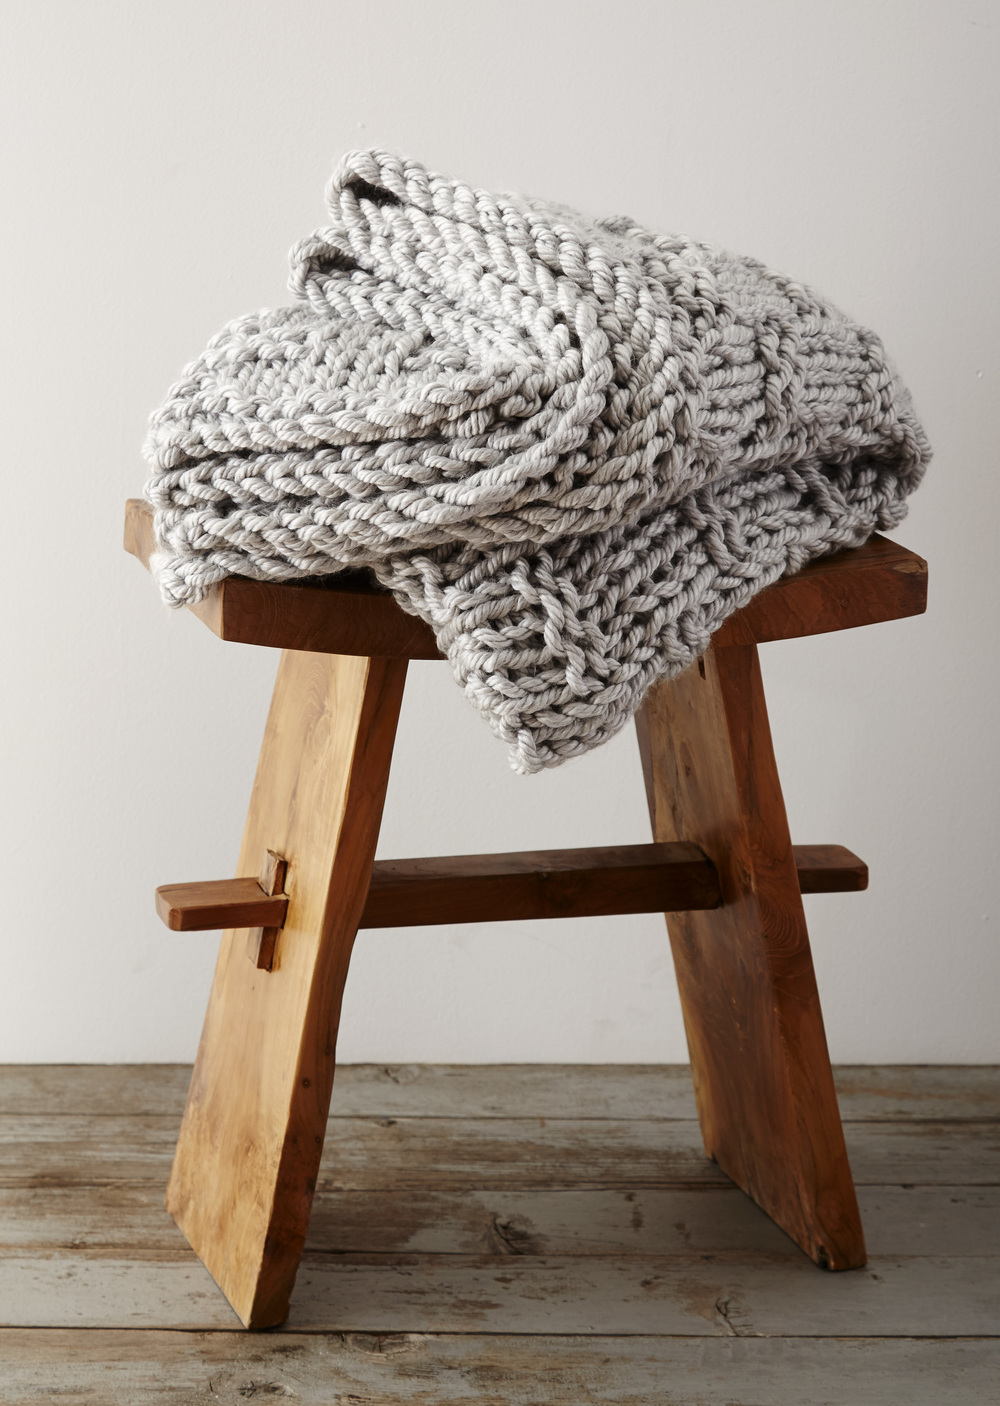 Extra chunky gratitude blanket for How to make a big chunky knit blanket